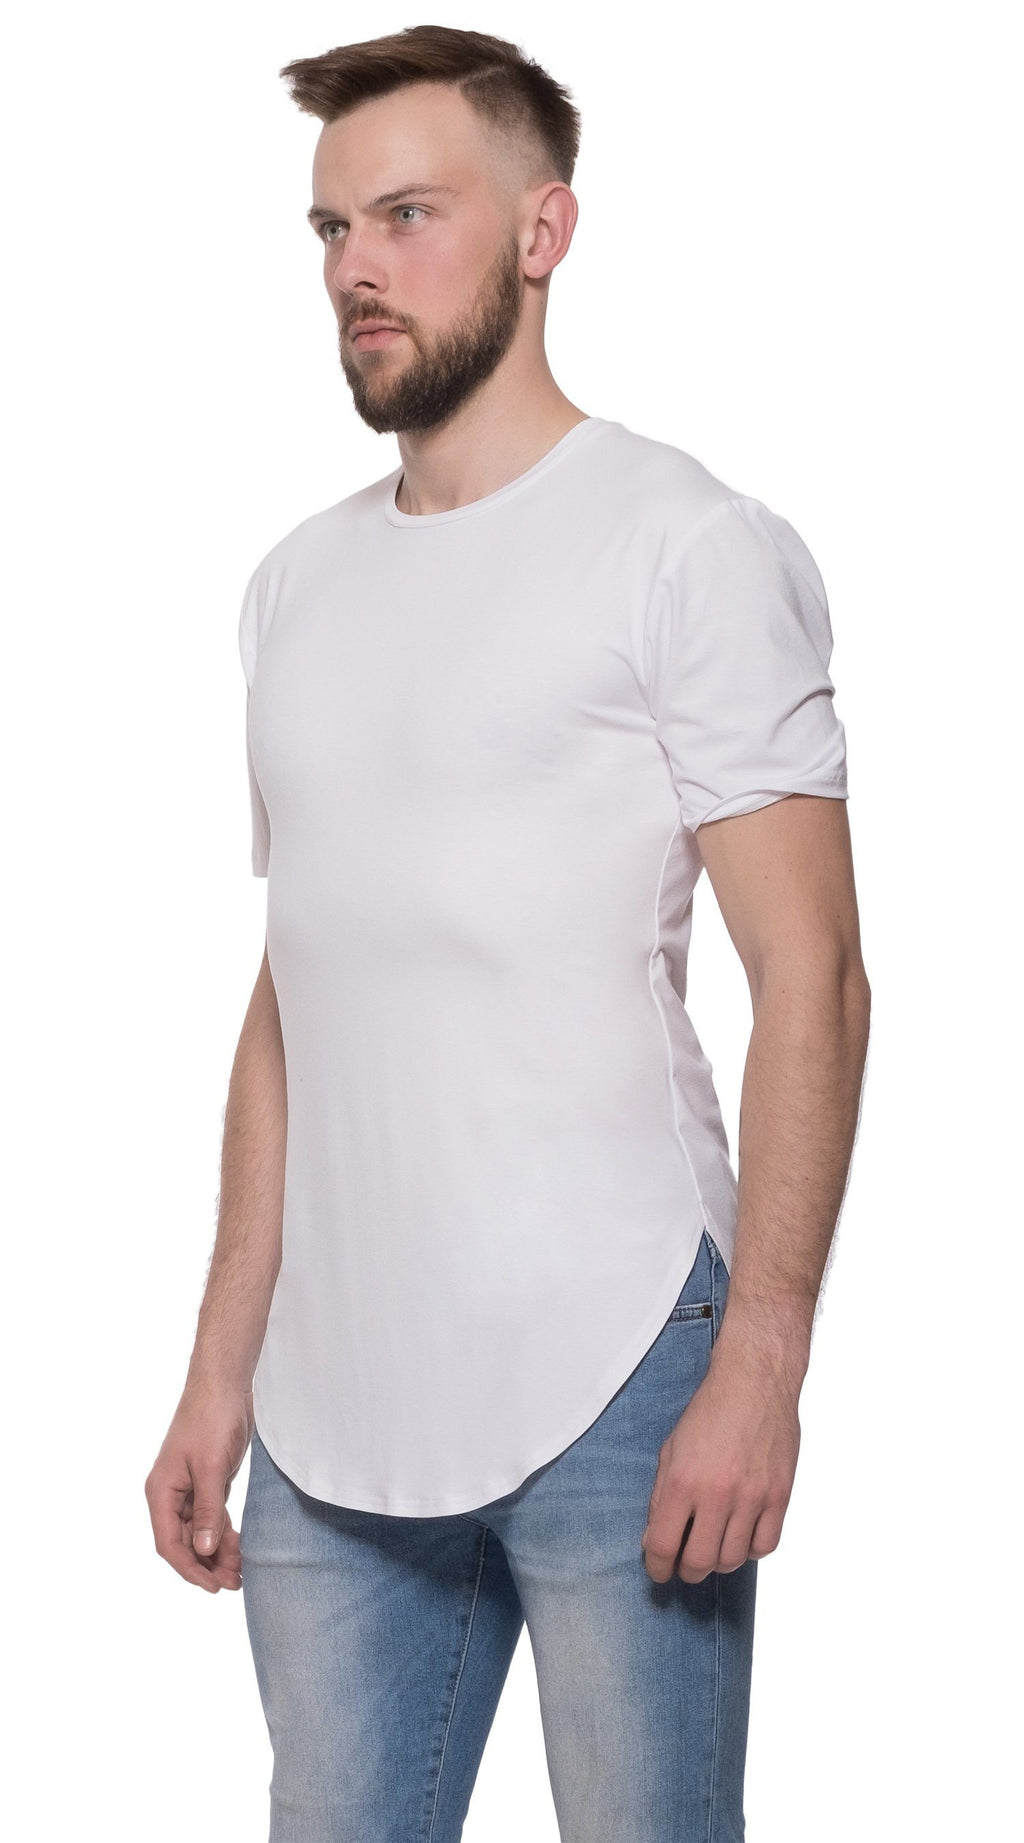 TheG Man Viscose Basic 2/2 Long Tee // white